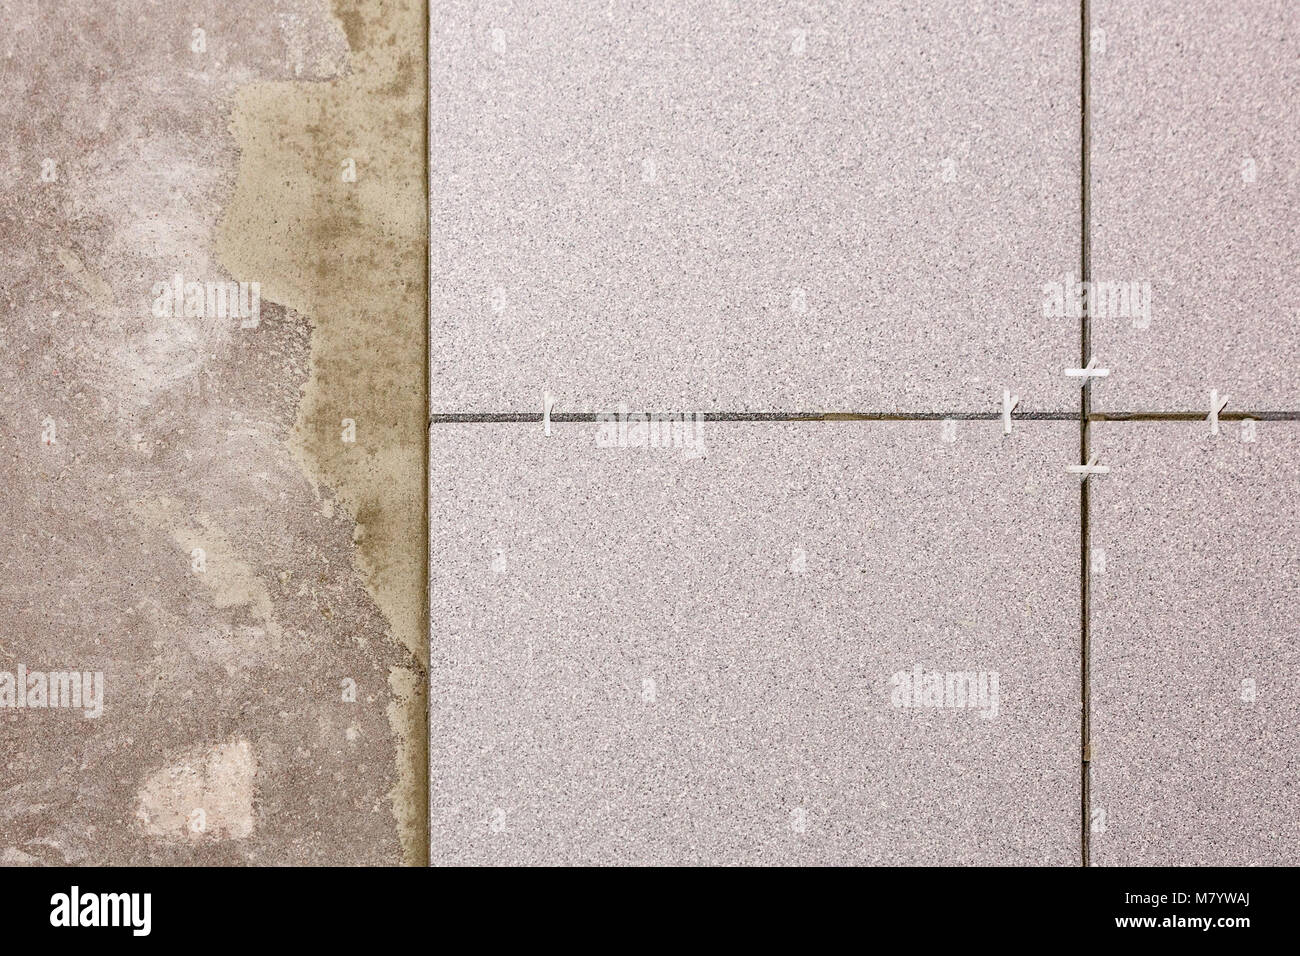 Ceramic Tiles Laying Stock Photos Ceramic Tiles Laying Stock